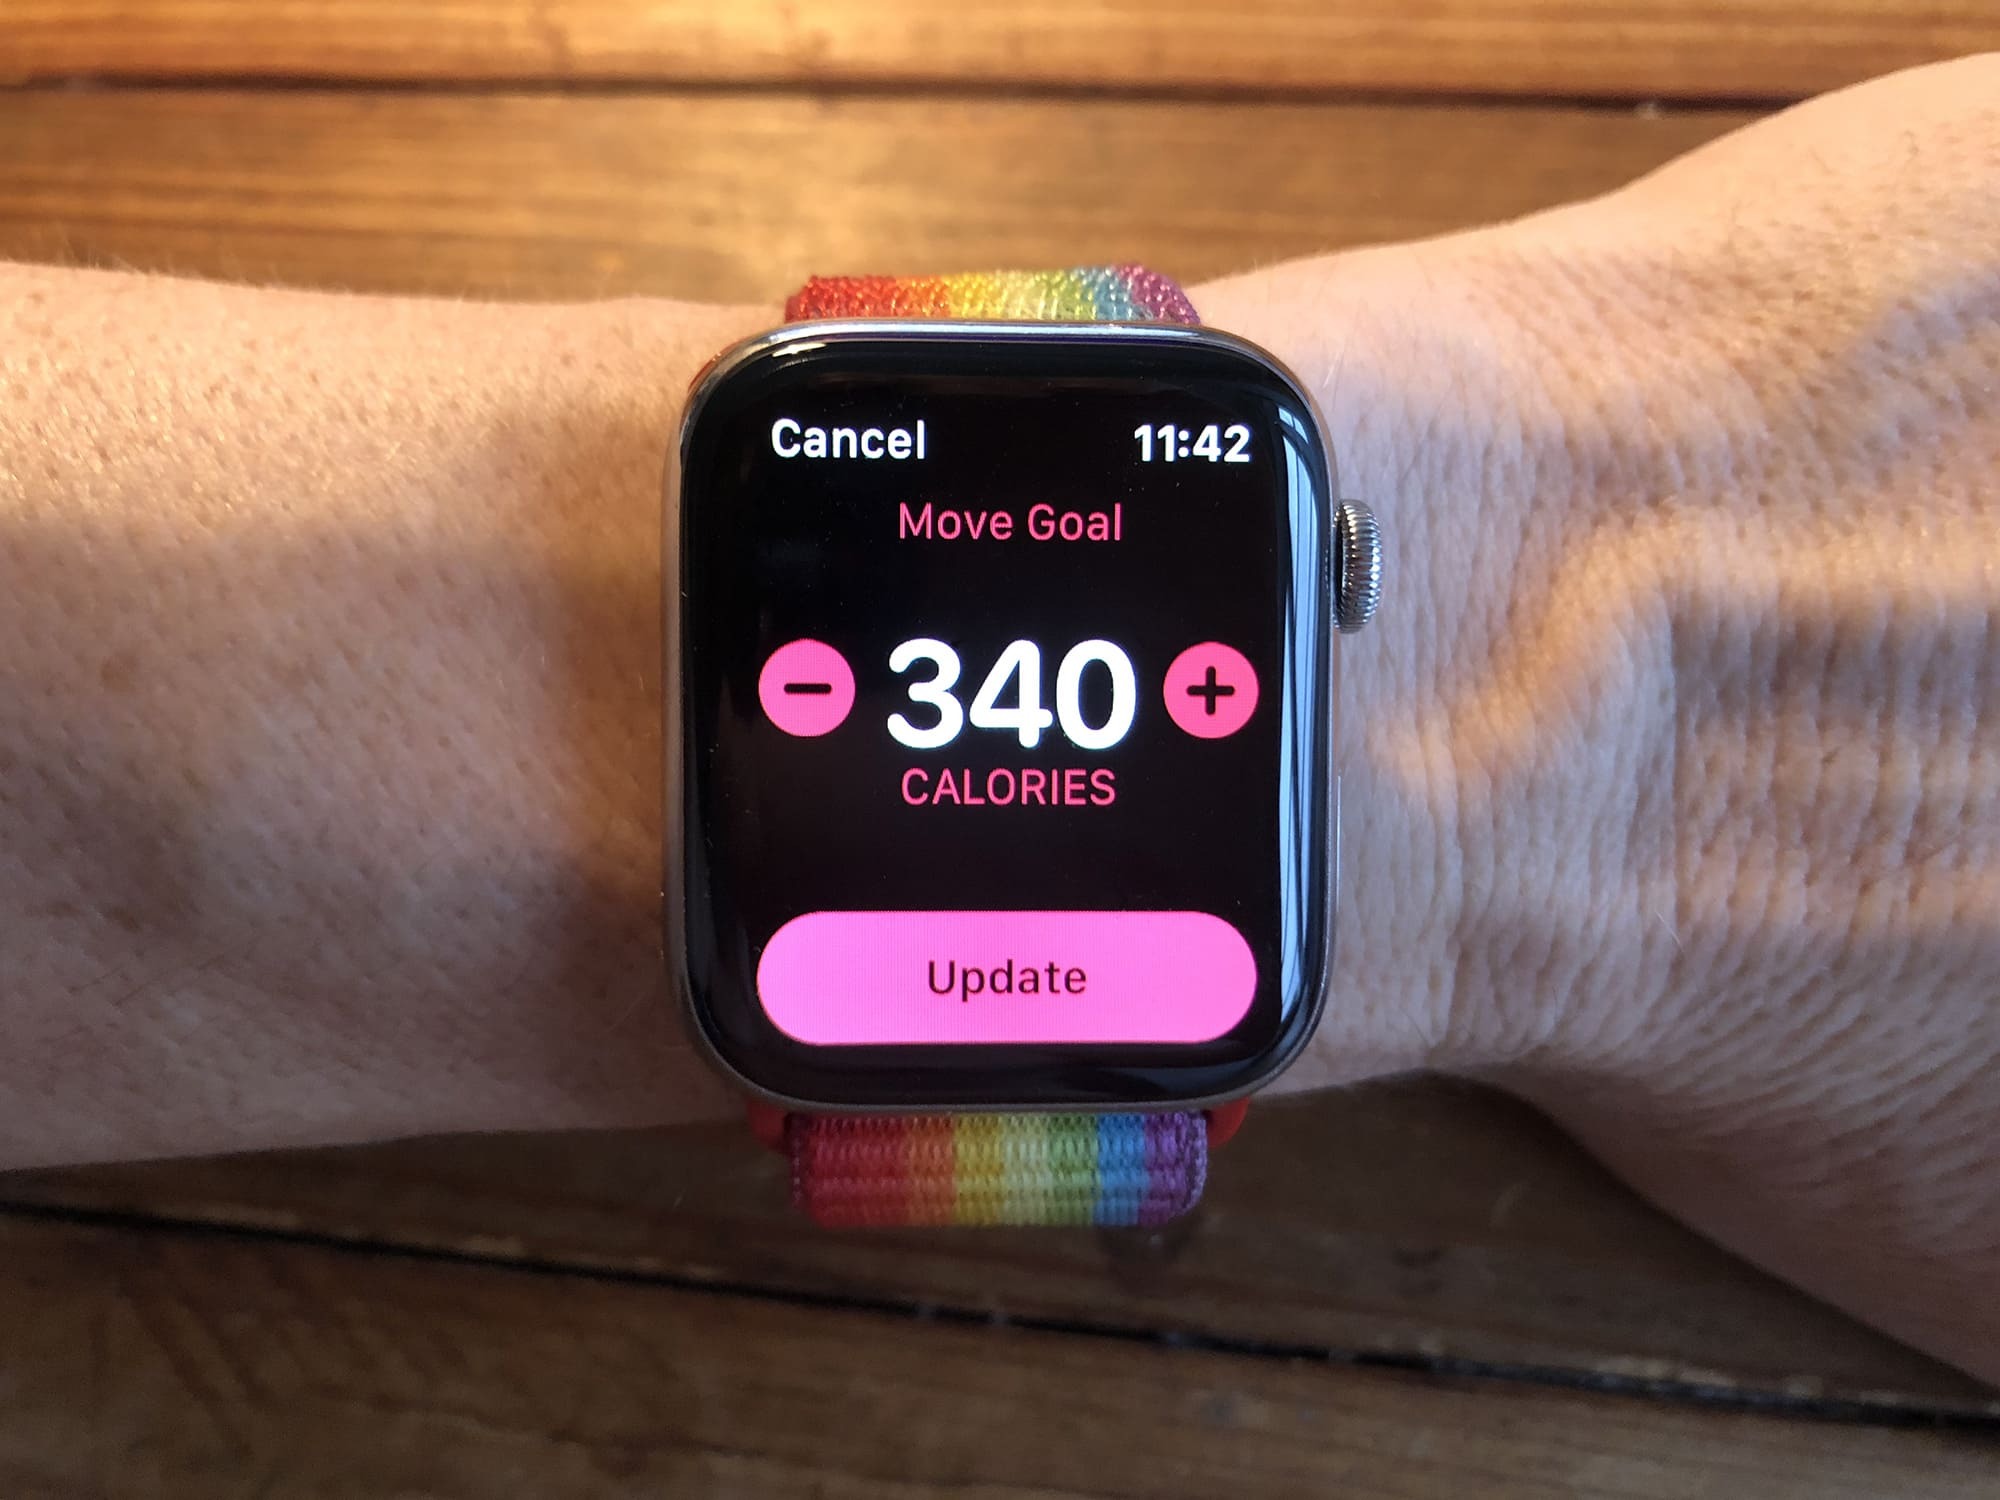 For best results, you should tailor your Apple Watch Move goal to suit your personal situation.